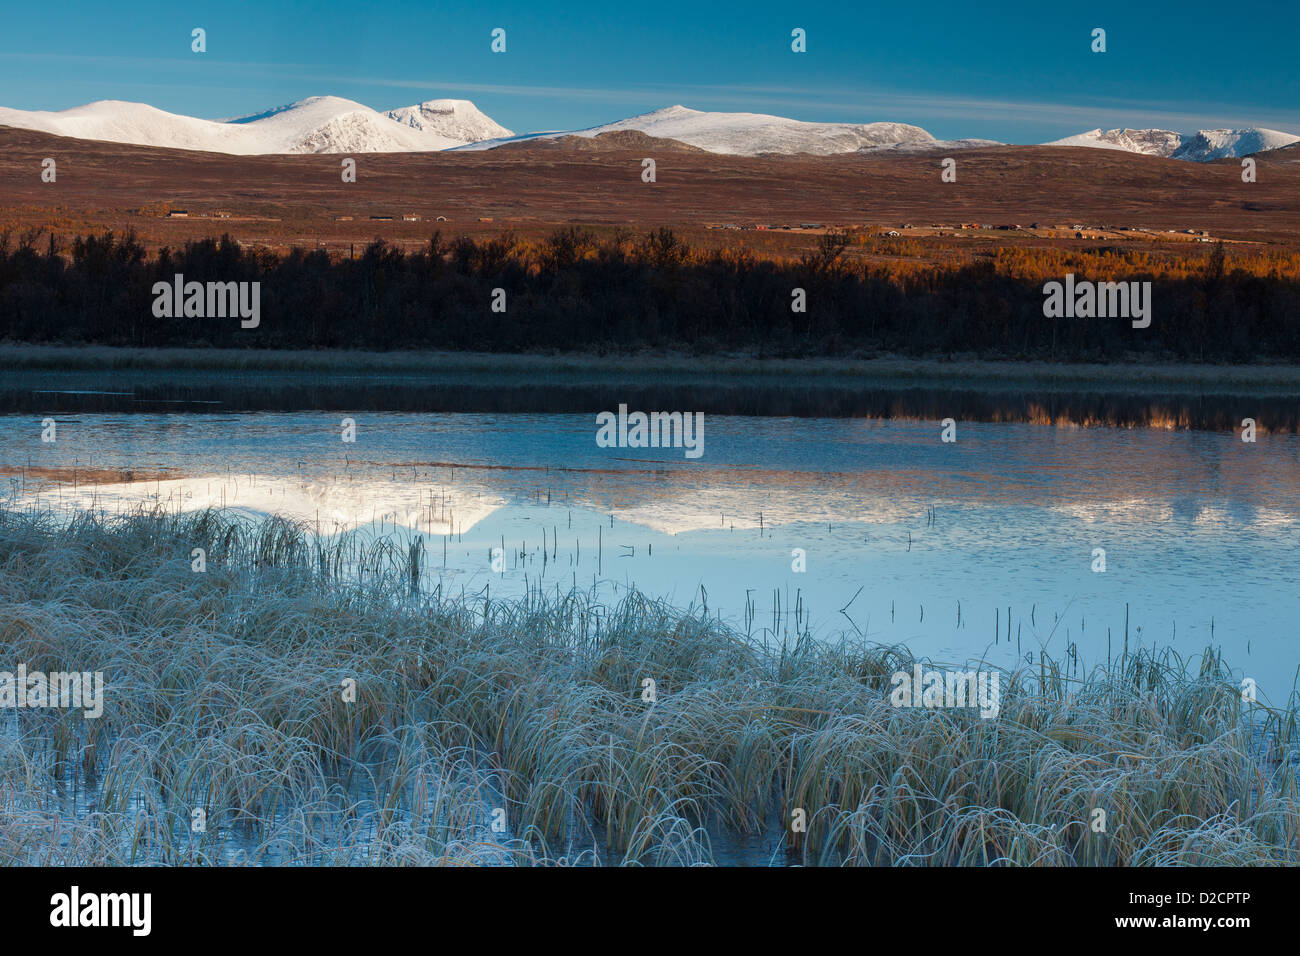 Frosty September morning at Fokstumyra nature reserve, Dovre, Norway. - Stock Image